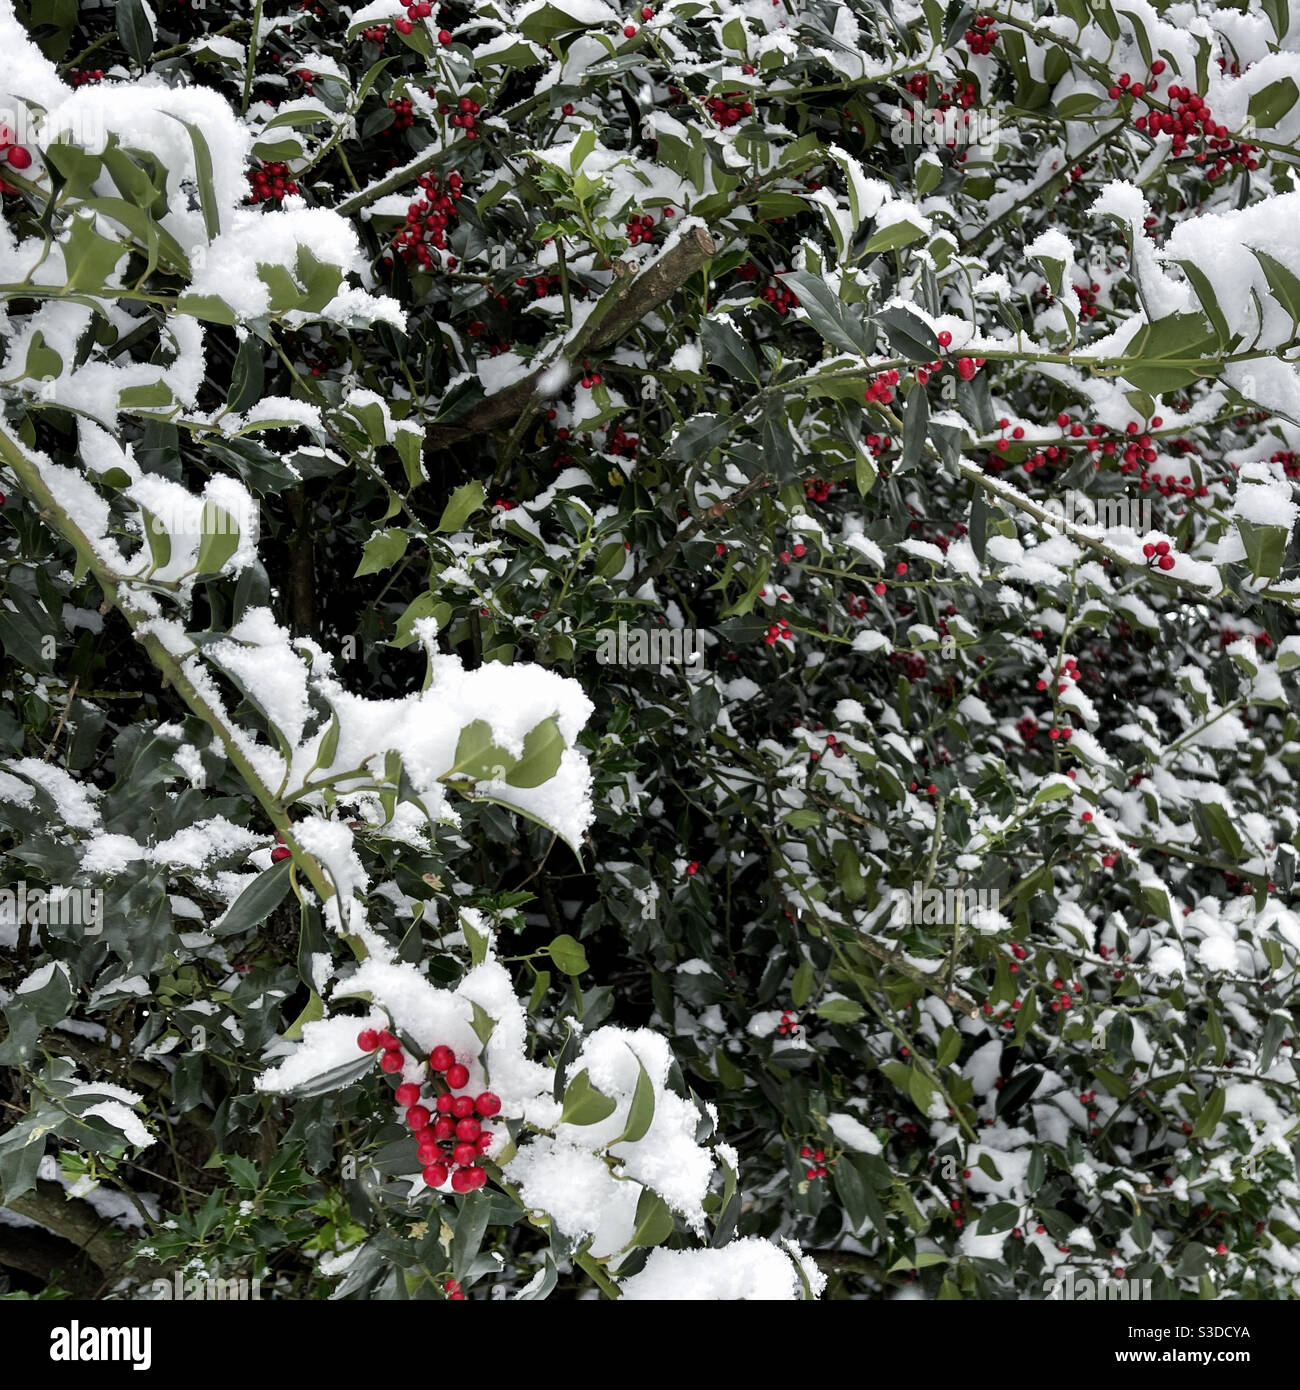 Holly tree with red berries under snow Stock Photo